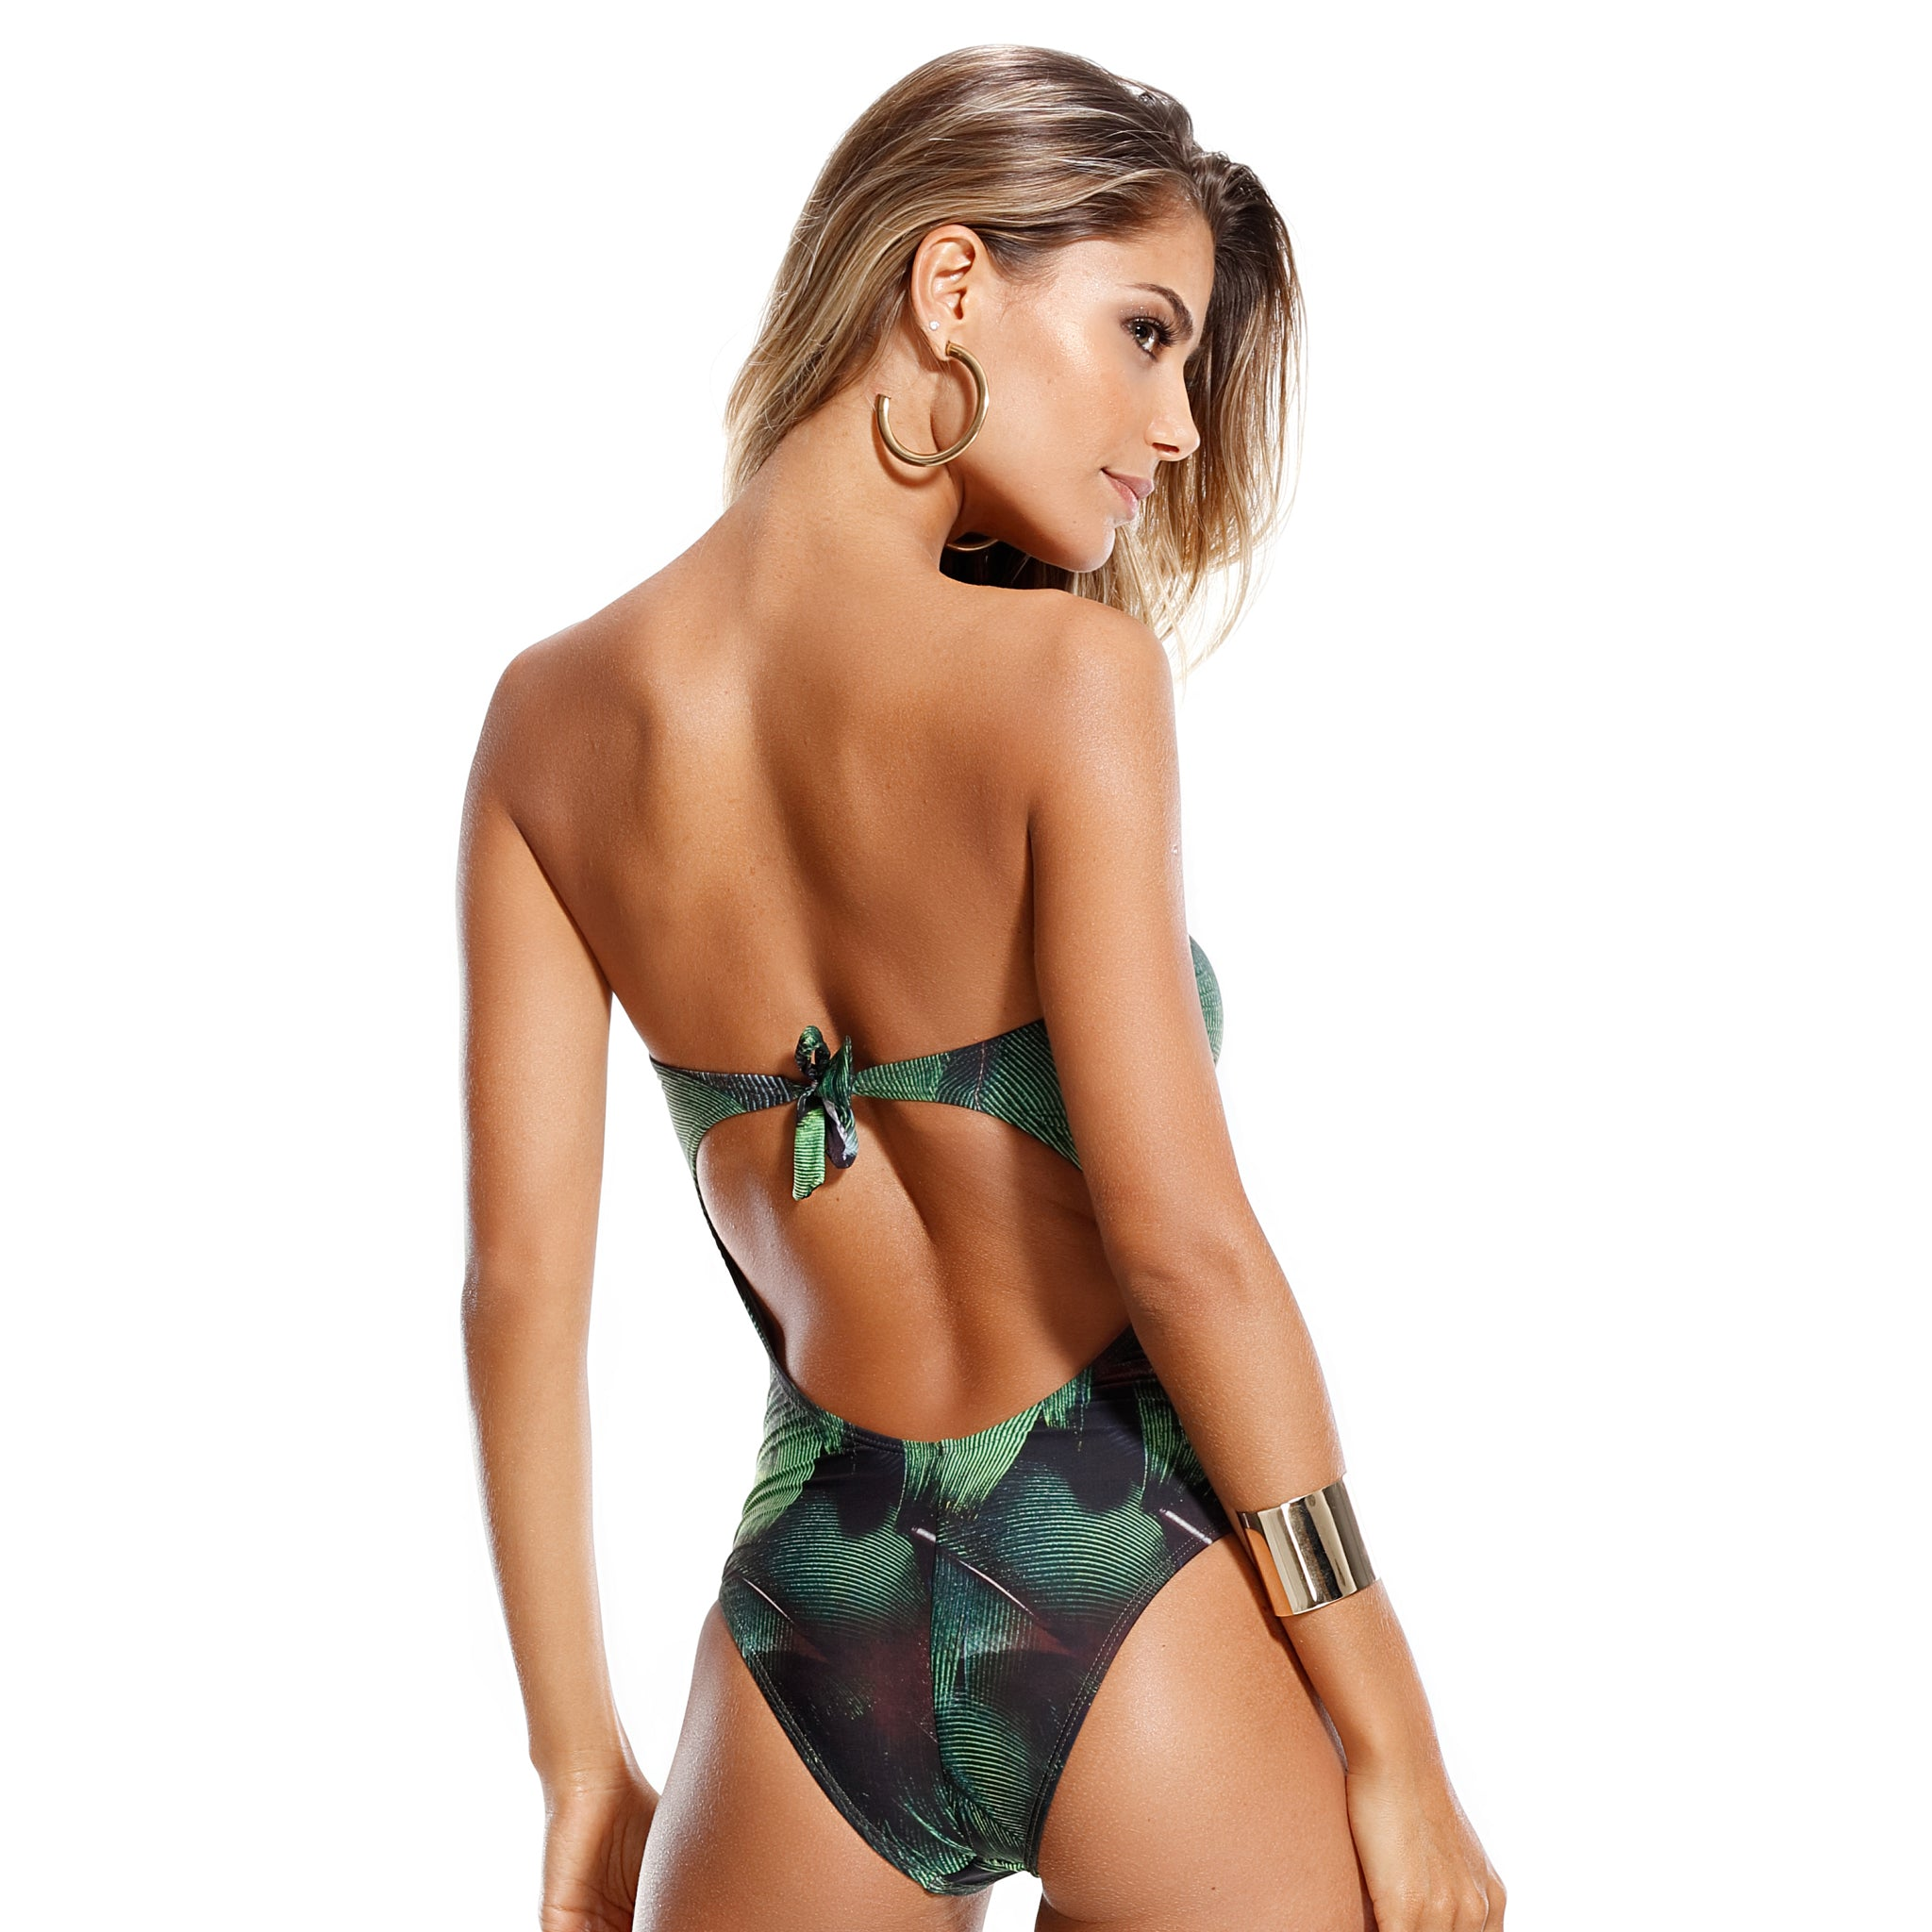 MAR RIO Stunning one piece swimsuit - Diva Brazilian Swimwear Collection